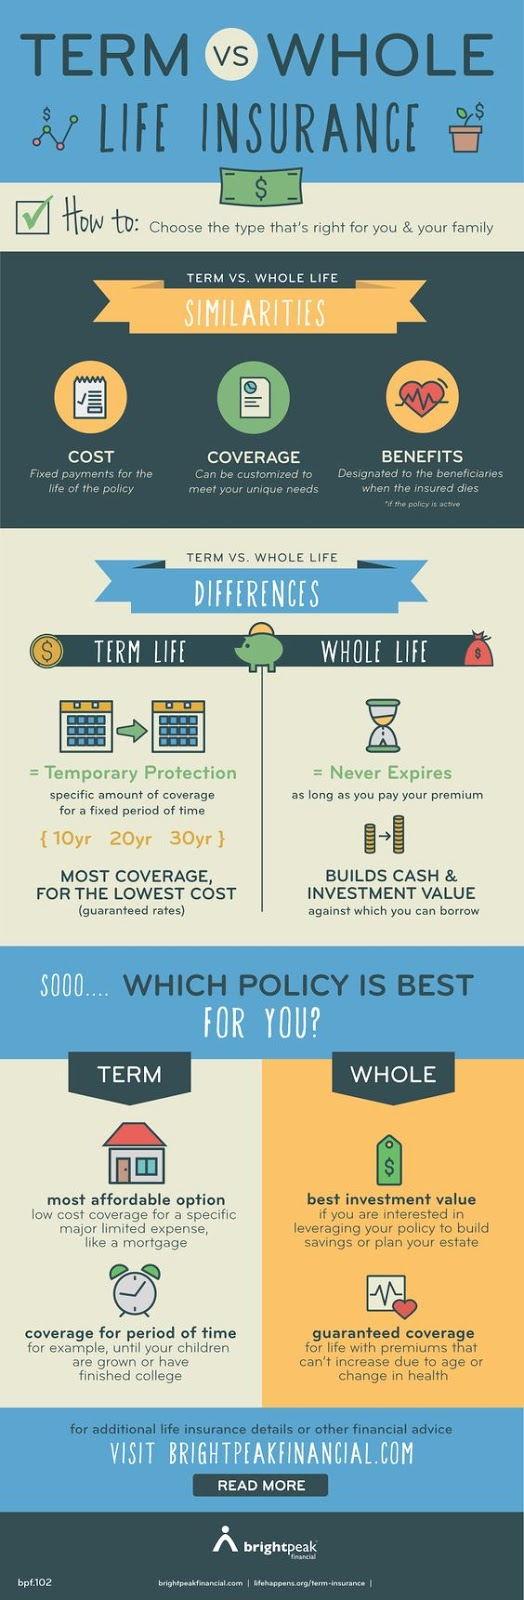 term vs whole life insurance